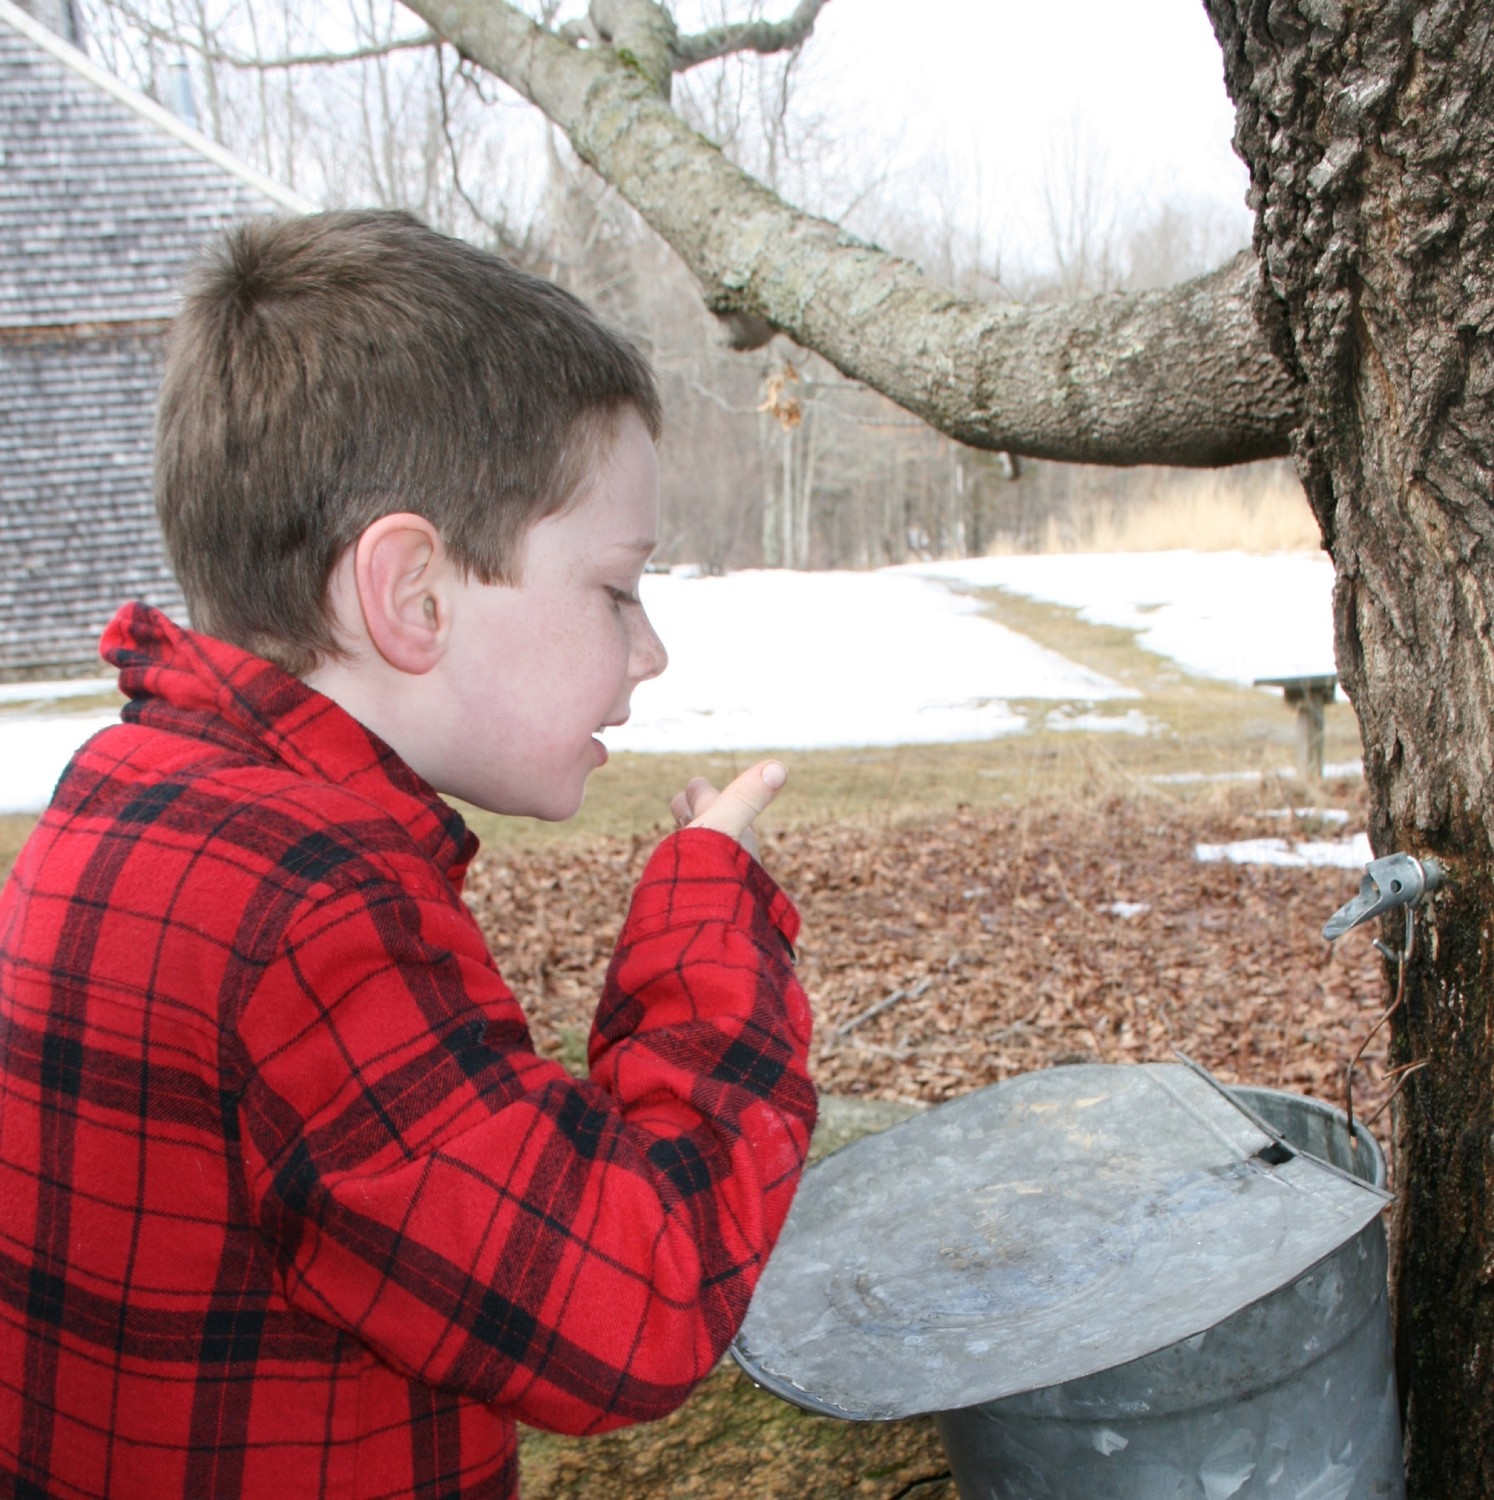 Learn all about the history of maple sugaring with Audubon on March 10, 2018 at the Caratunk Wildlife Refuge in Seekonk, MA.